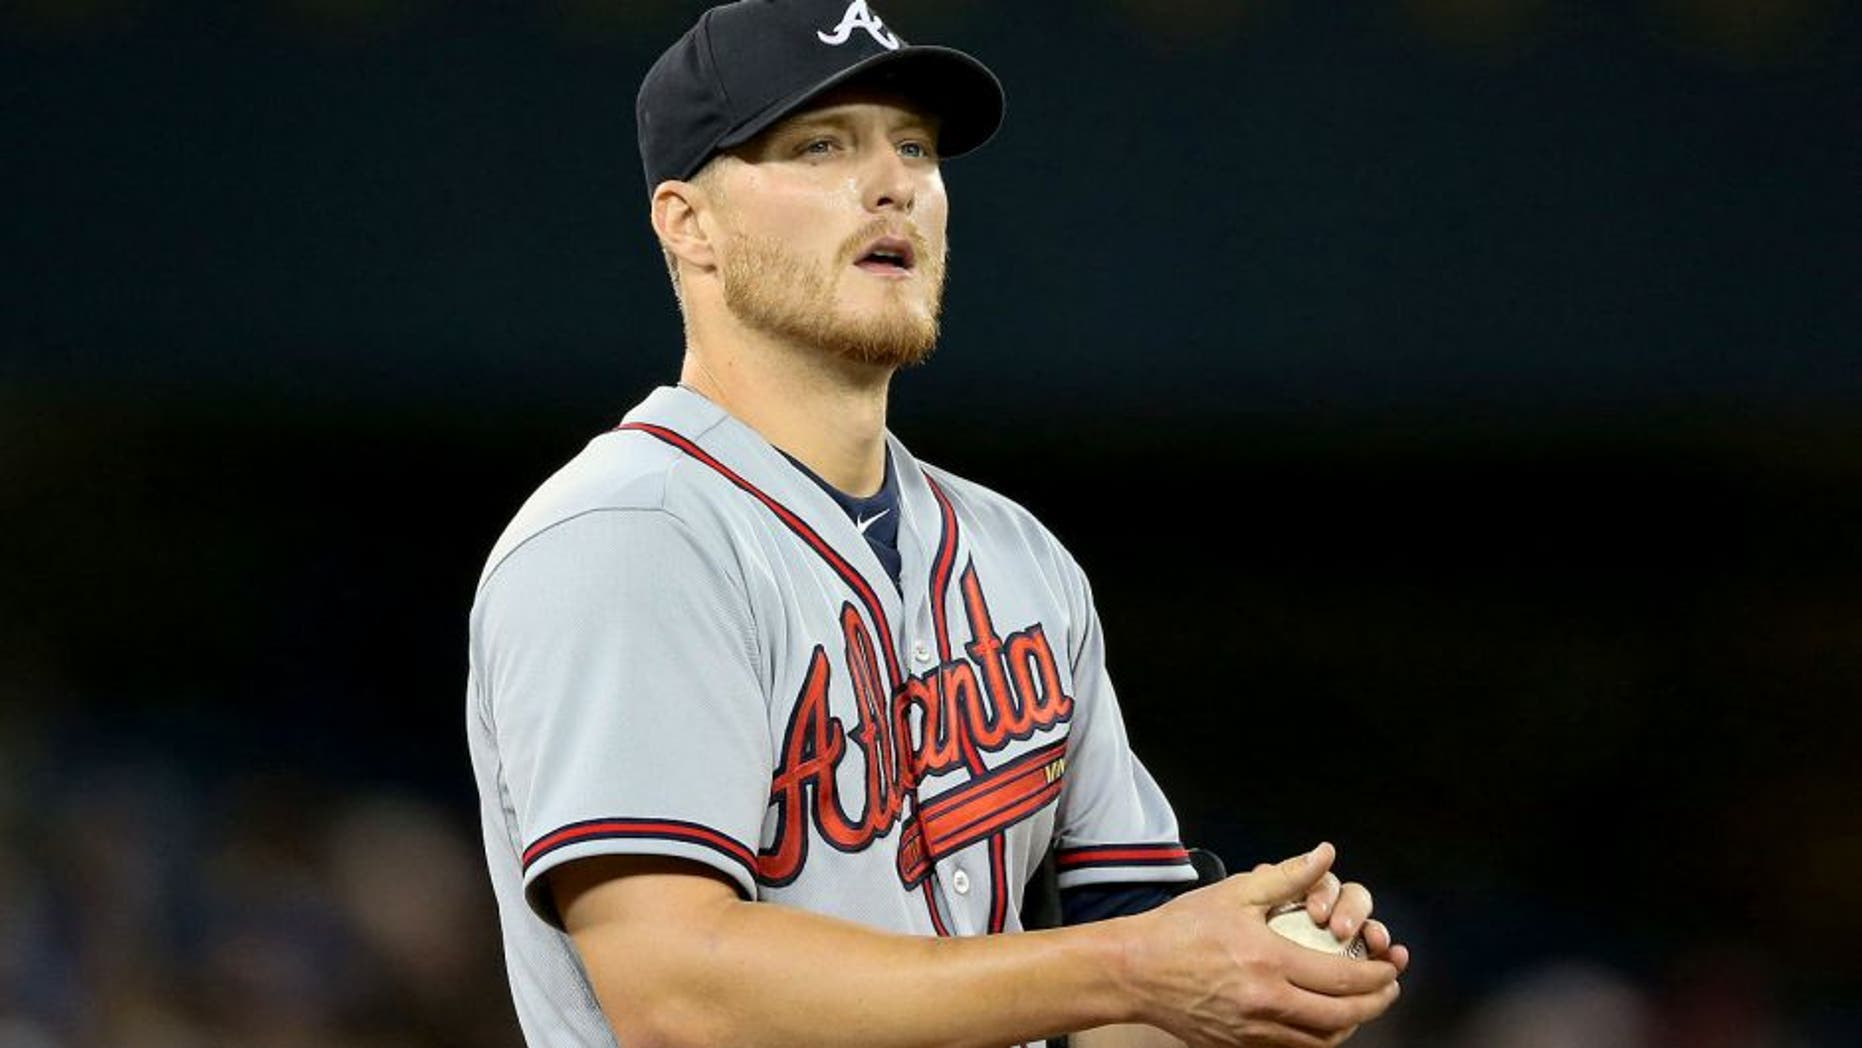 TORONTO, CANADA - APRIL 19: Shelby Miller #17 of the Atlanta Braves rubs up a baseball in the sixth inning during MLB game action against the Toronto Blue Jays on April 19, 2015 at Rogers Centre in Toronto, Ontario, Canada. (Photo by Tom Szczerbowski/Getty Images)